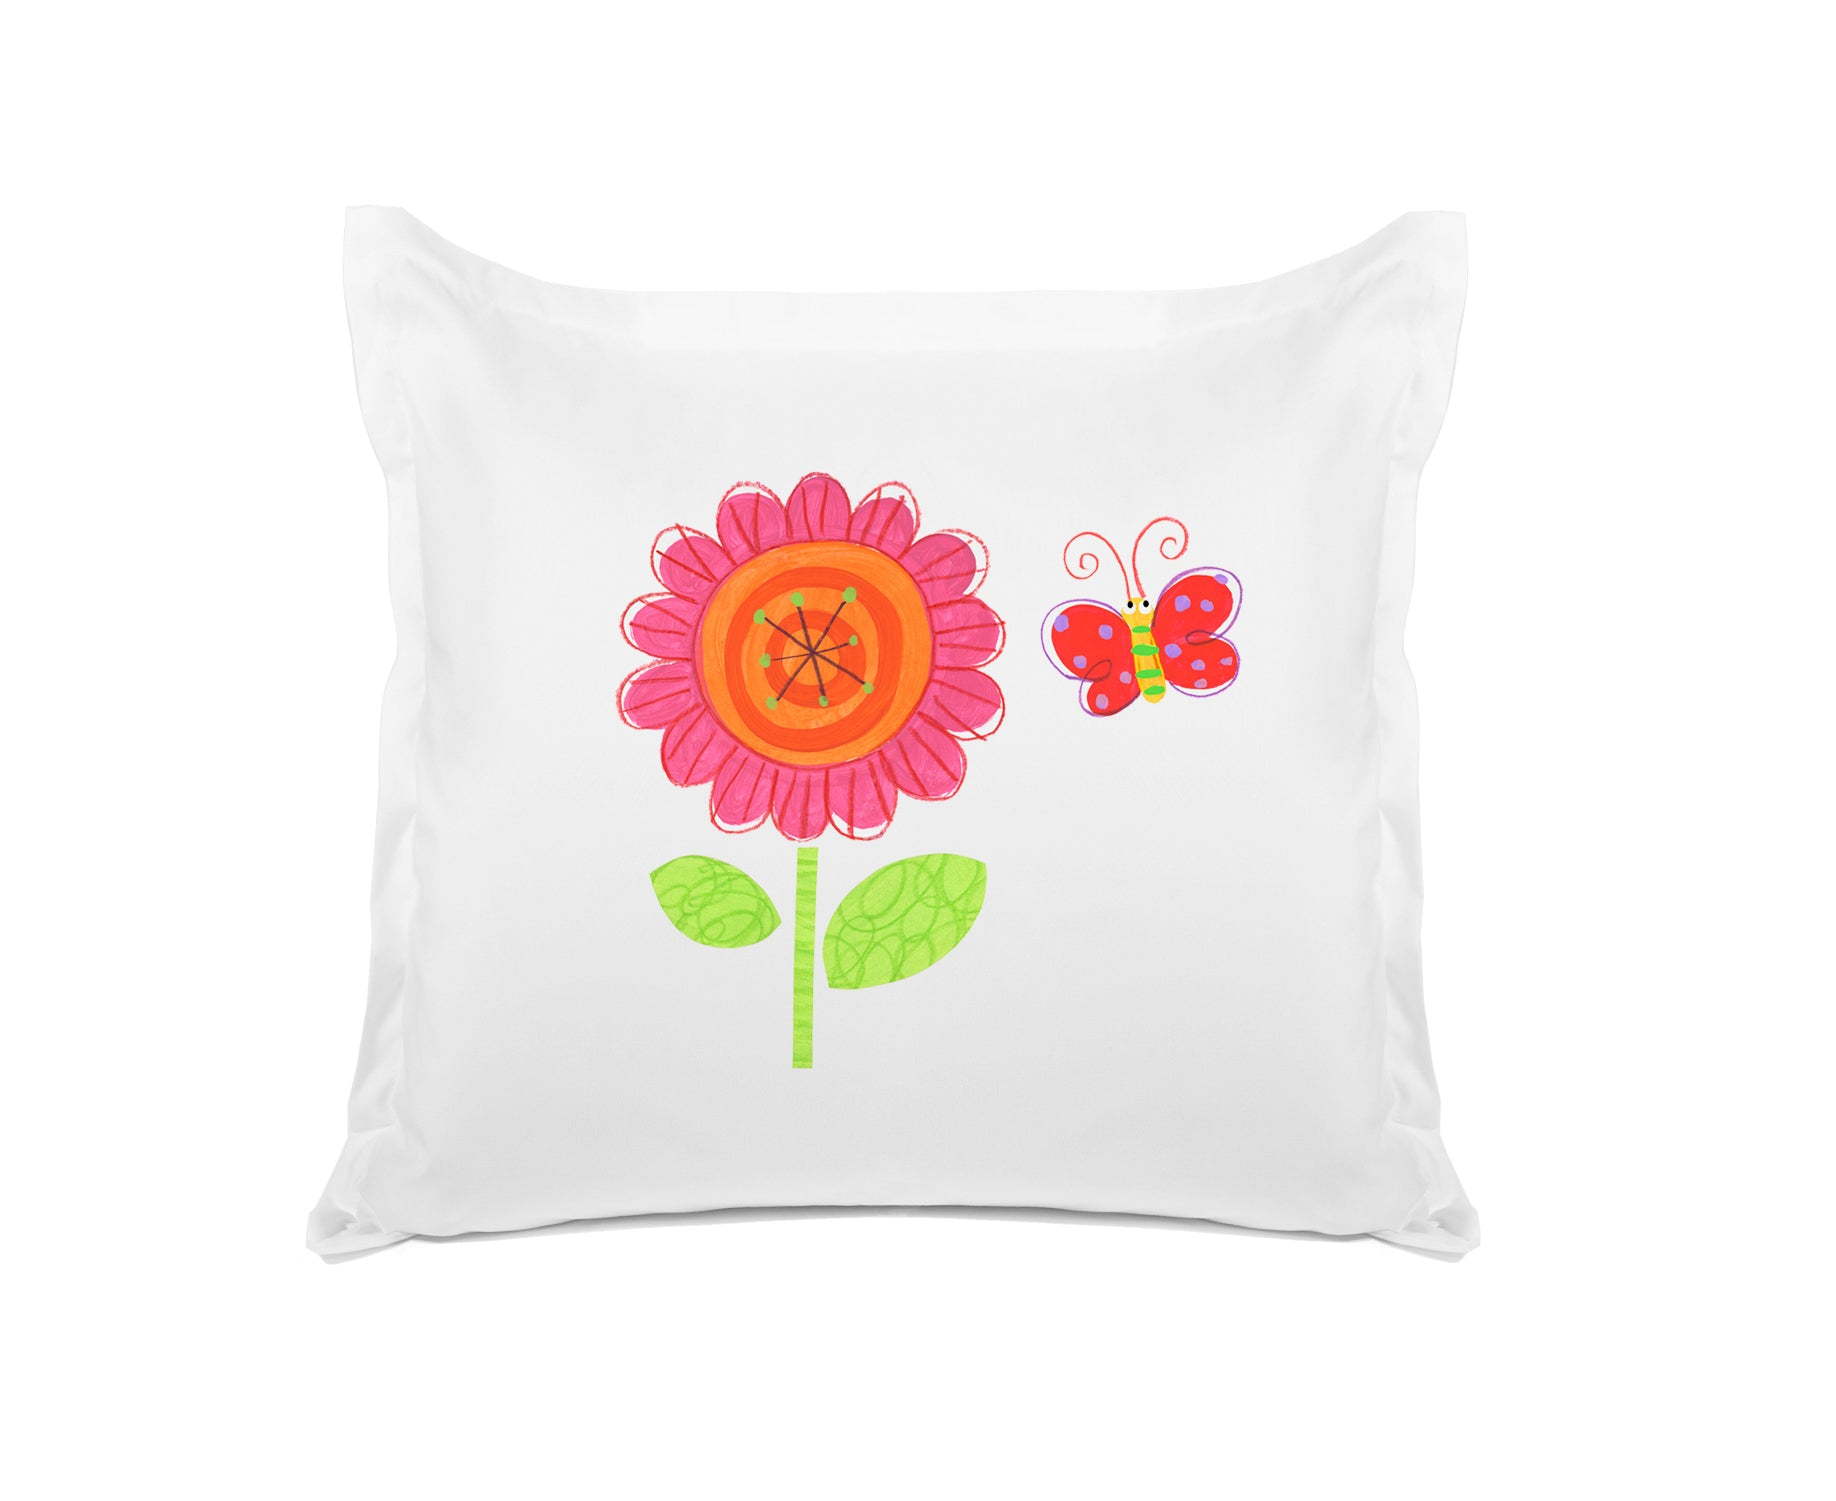 Flower Power - Personalized Kids Pillowcase Collection-Di Lewis